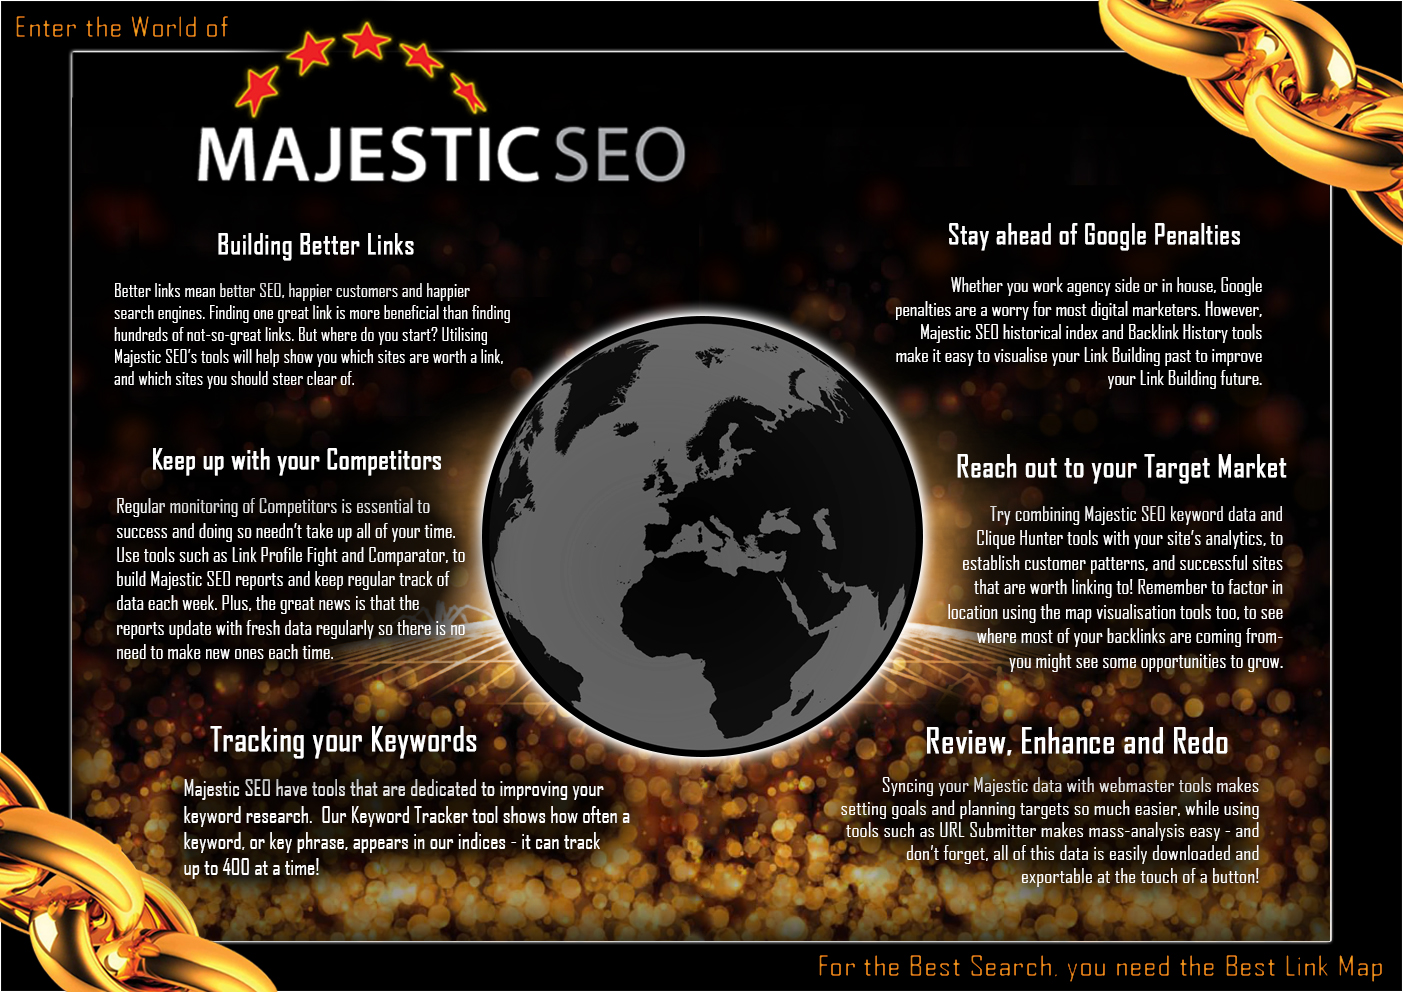 Enter the World of Majestic SEO